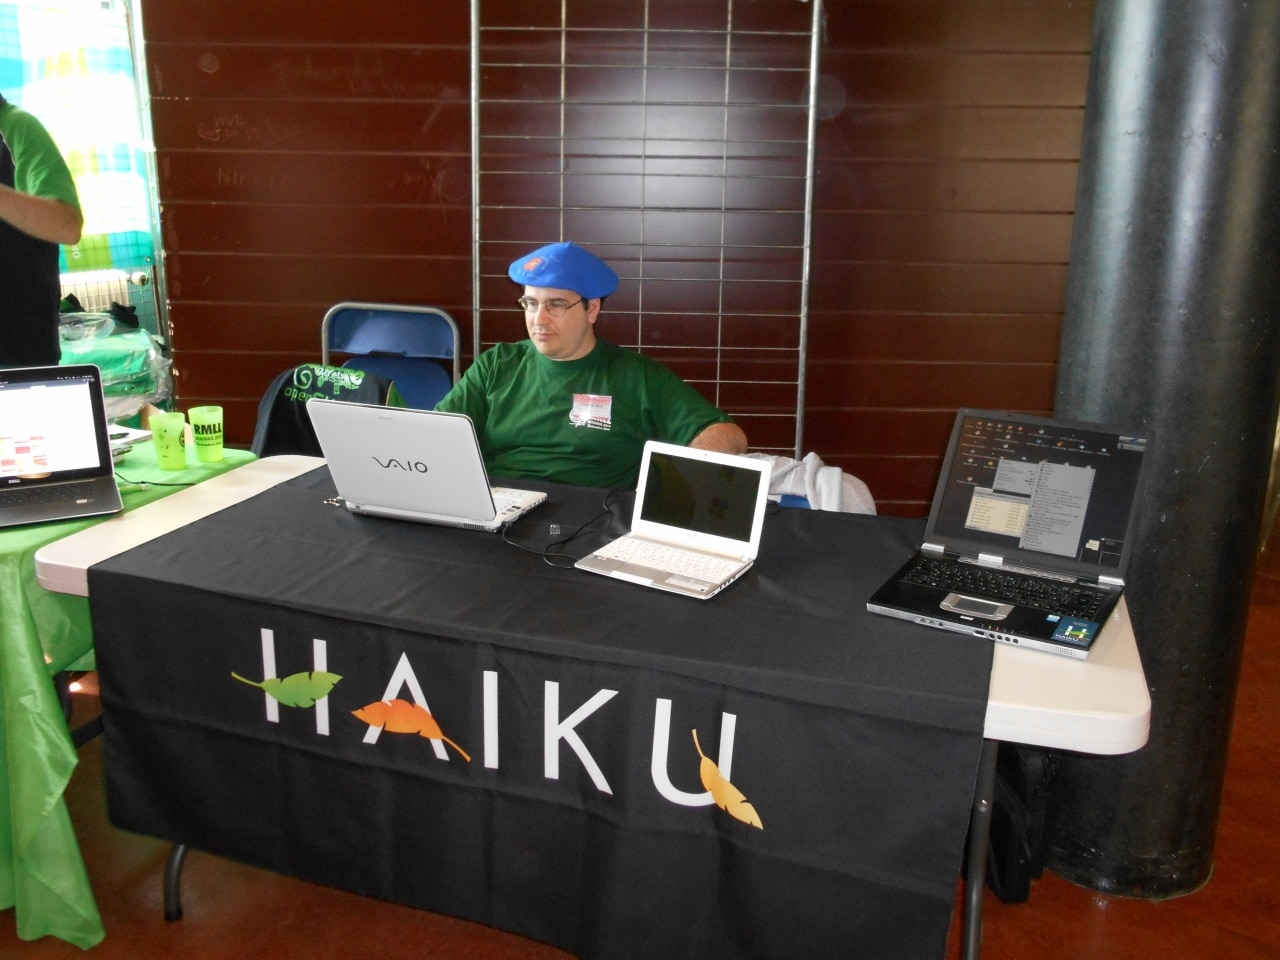 Olivier at the Haiku booth